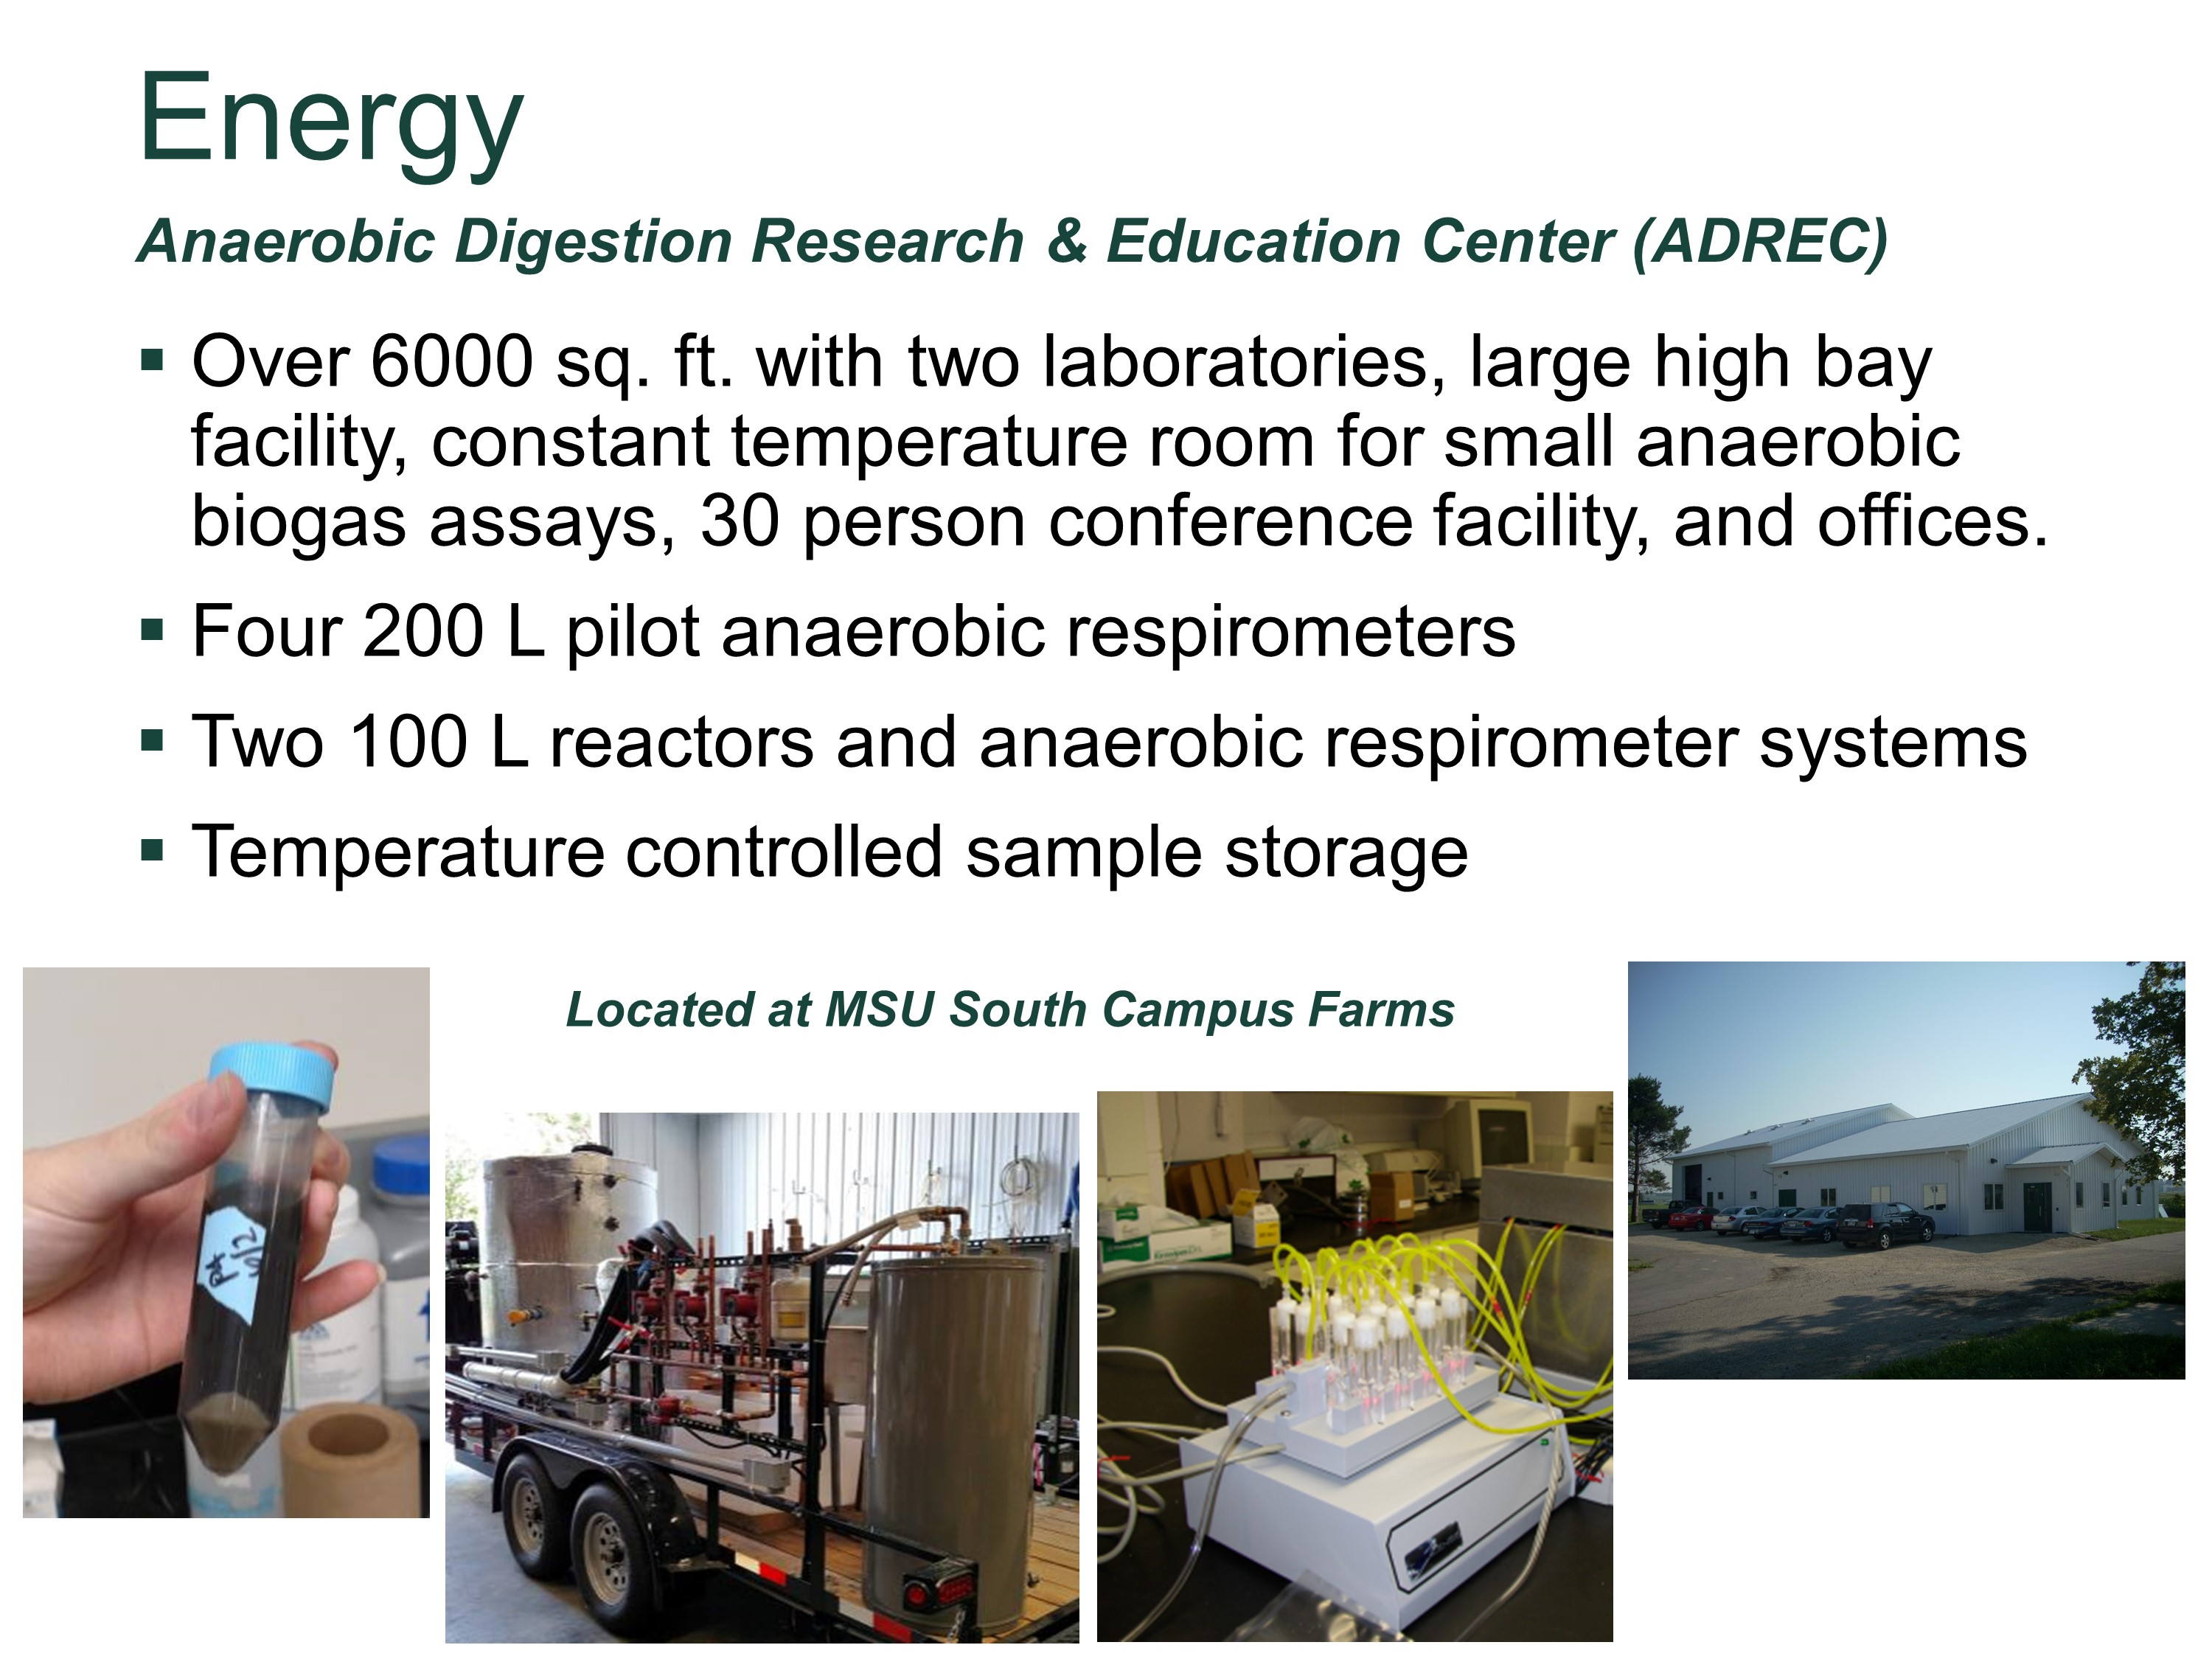 MSU Anaerobic Digestion Research and Education Center (ADREC)